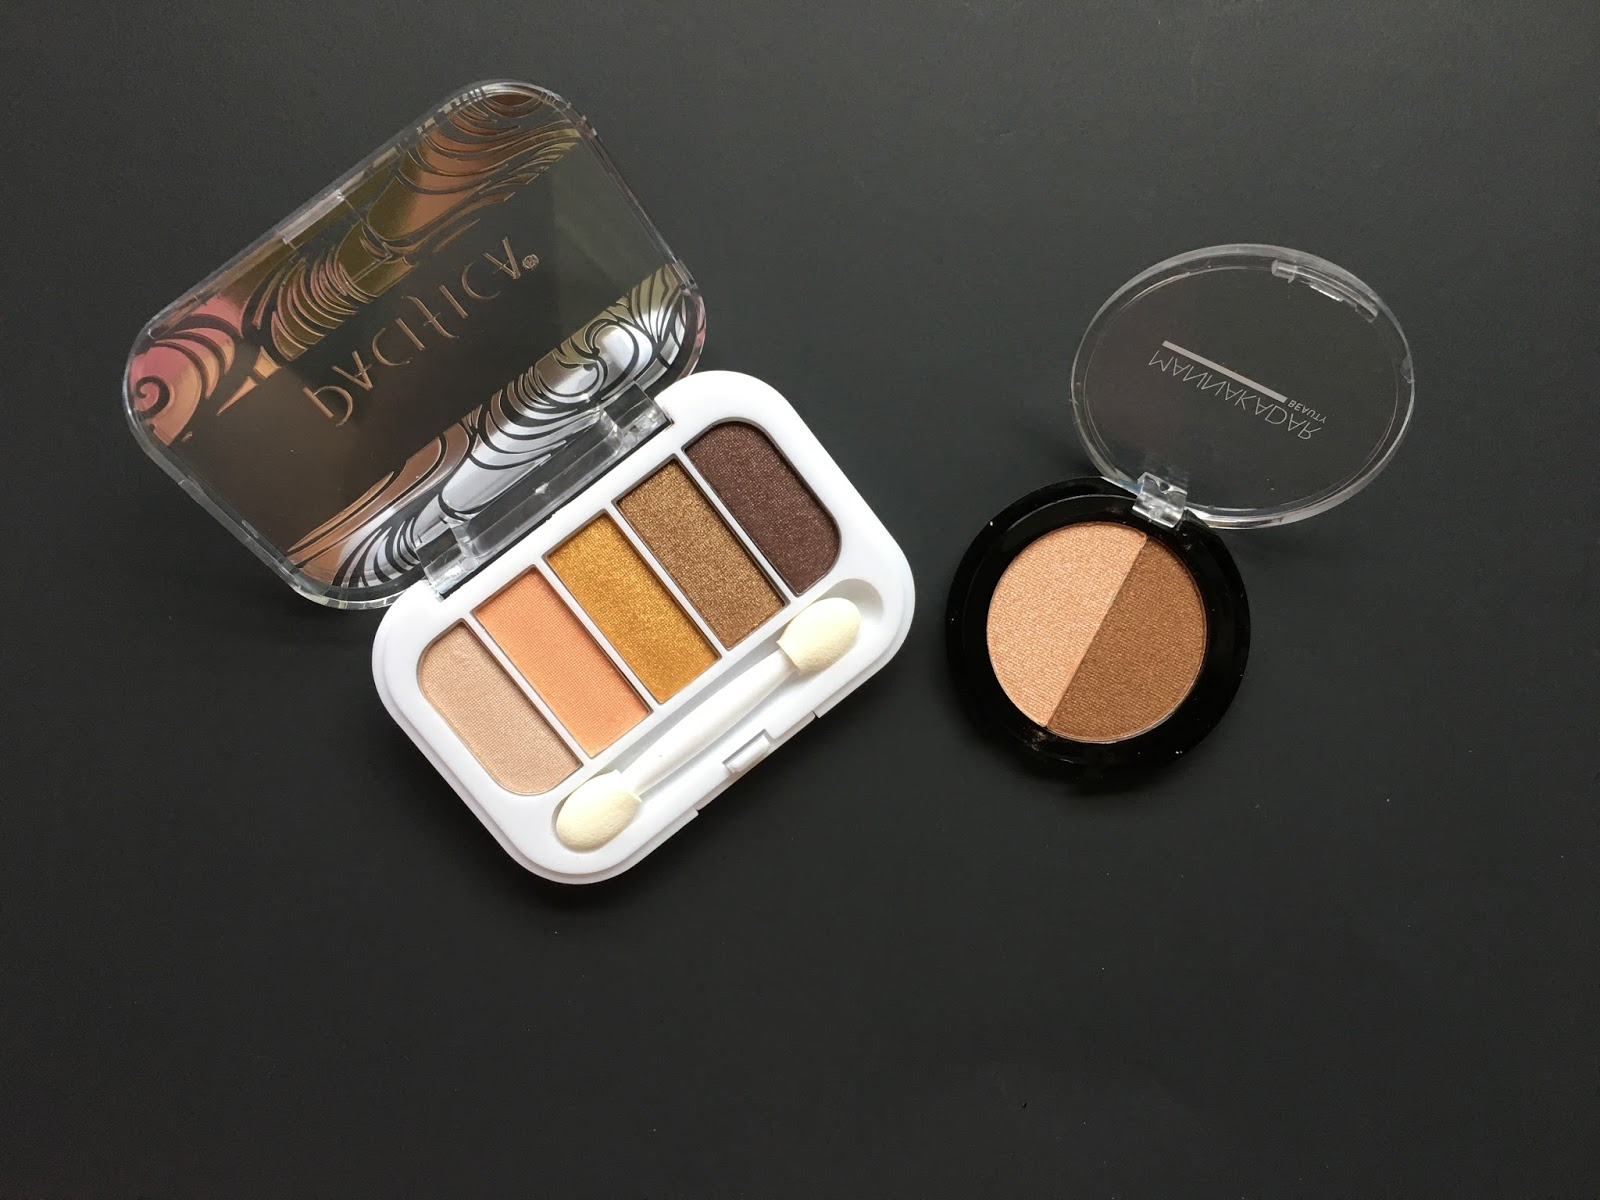 Pacifica Island Life Eyeshadow Palette Review